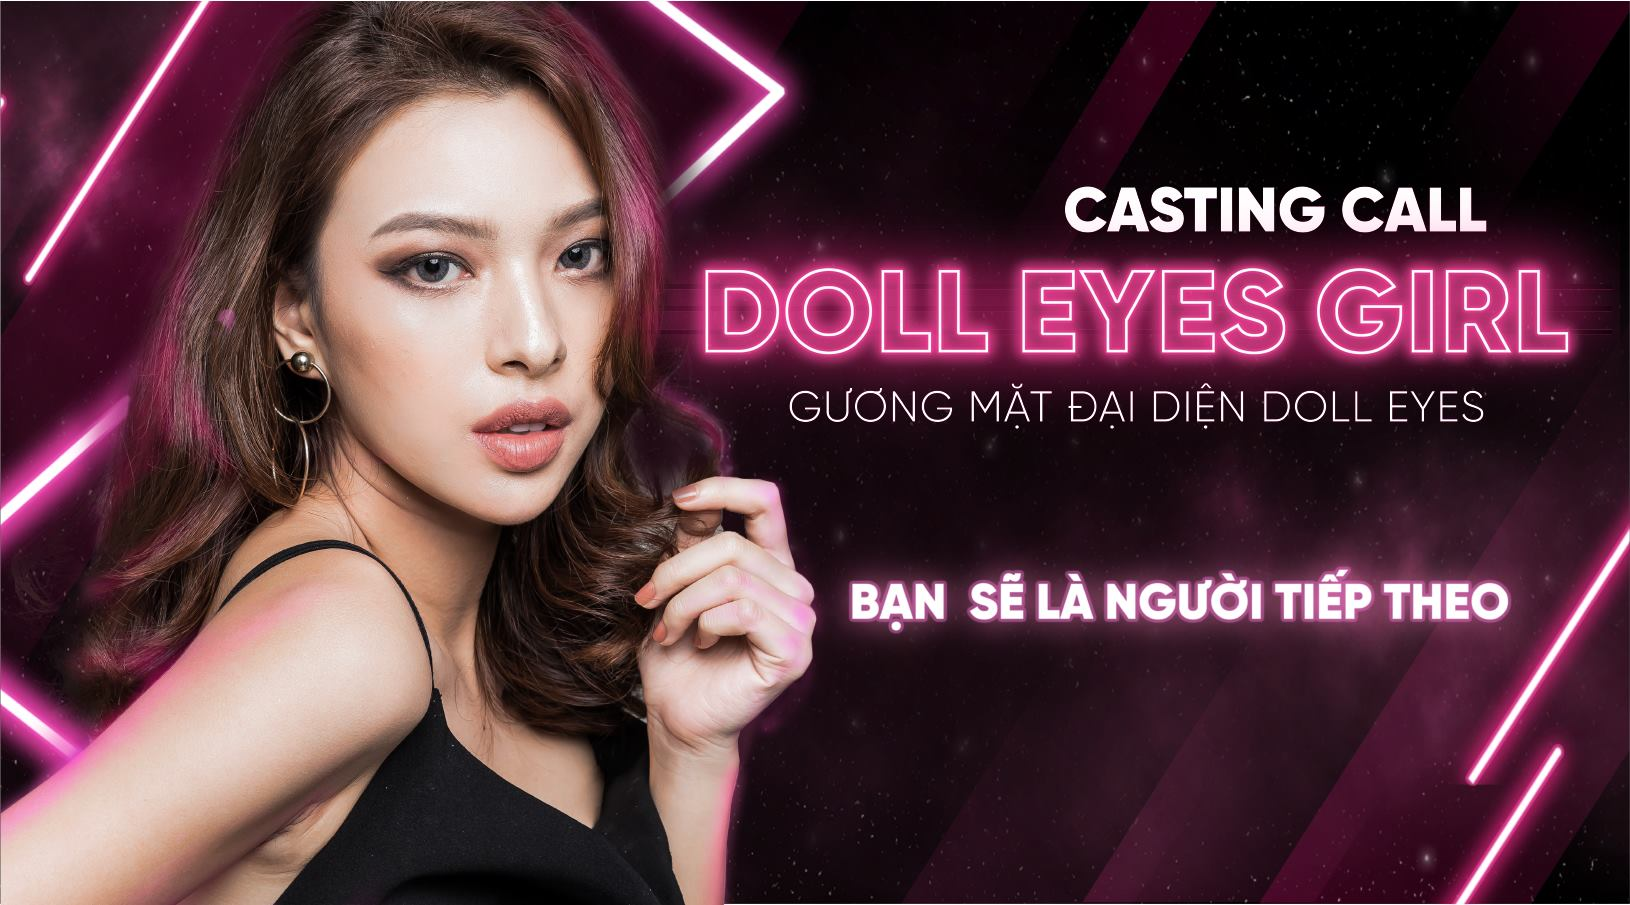 Casting call - DOLL EYES GIRL